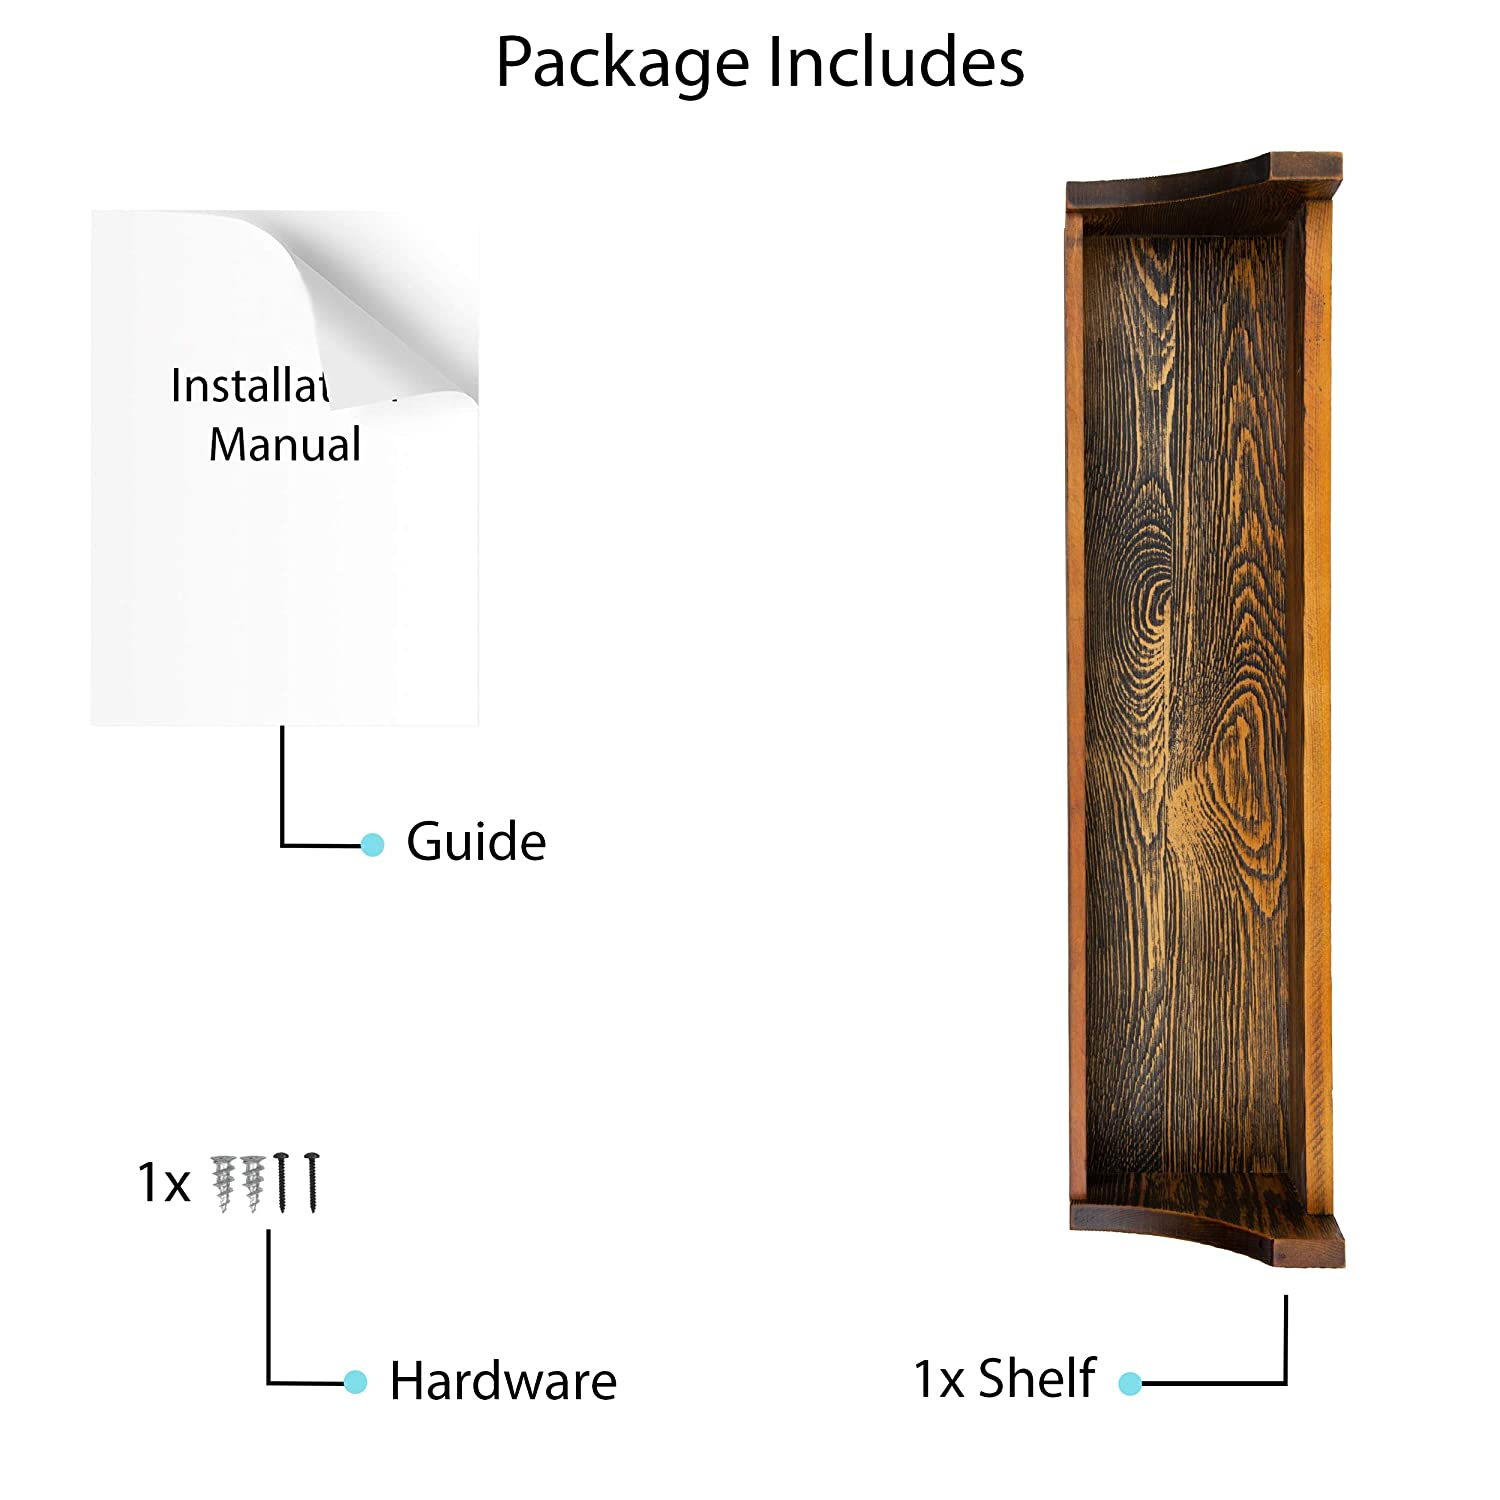 brightmaison Walnut Stained Rustic Wood Wall Shelf Weathered Handmade Reclaimed Style Wooden Multi Purpose Wall Rack Floating Shelf Dark Walnut Stained D/écor Display